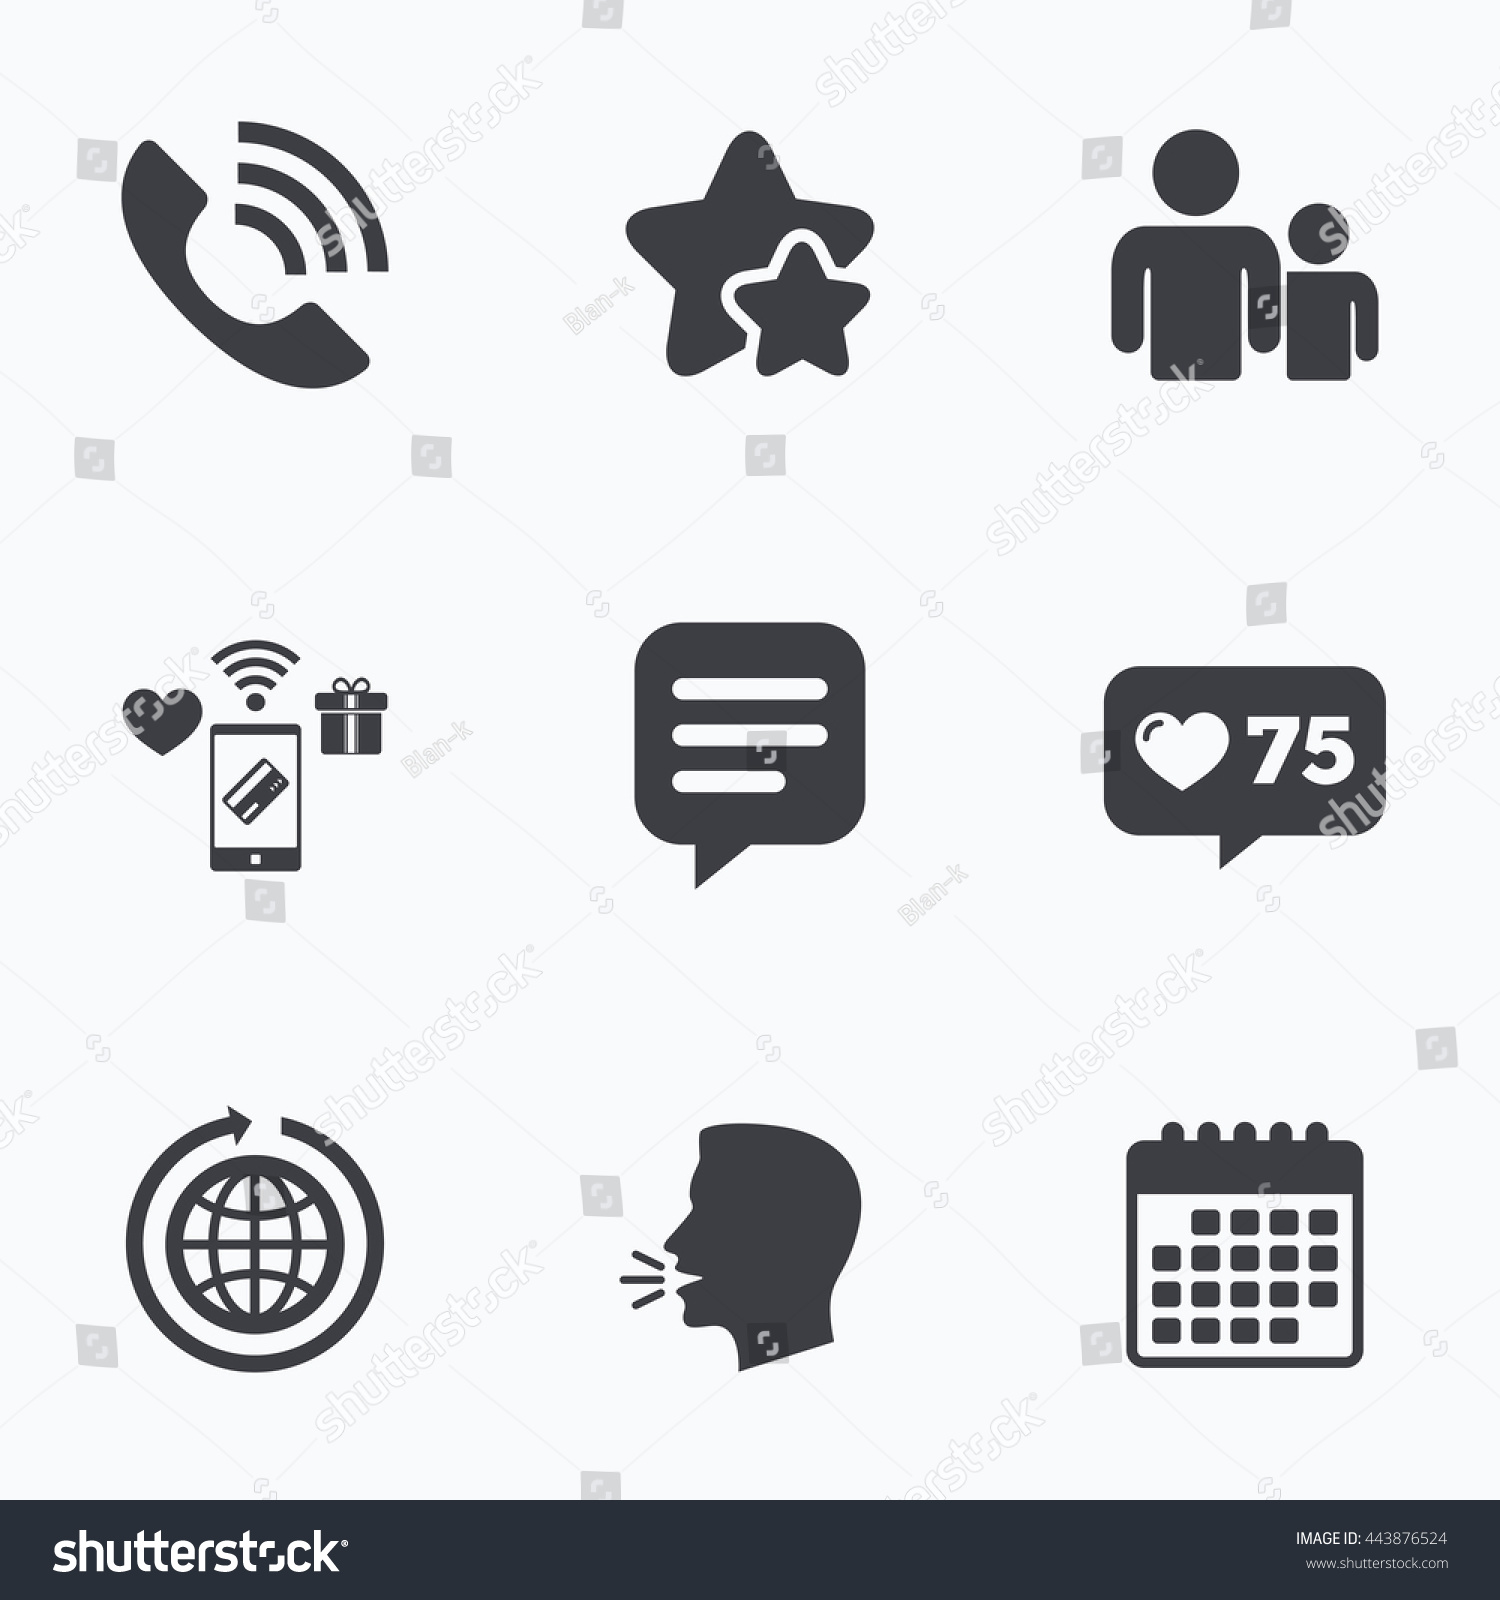 Group Of People And Share Icons Speech Bubble And Round The World